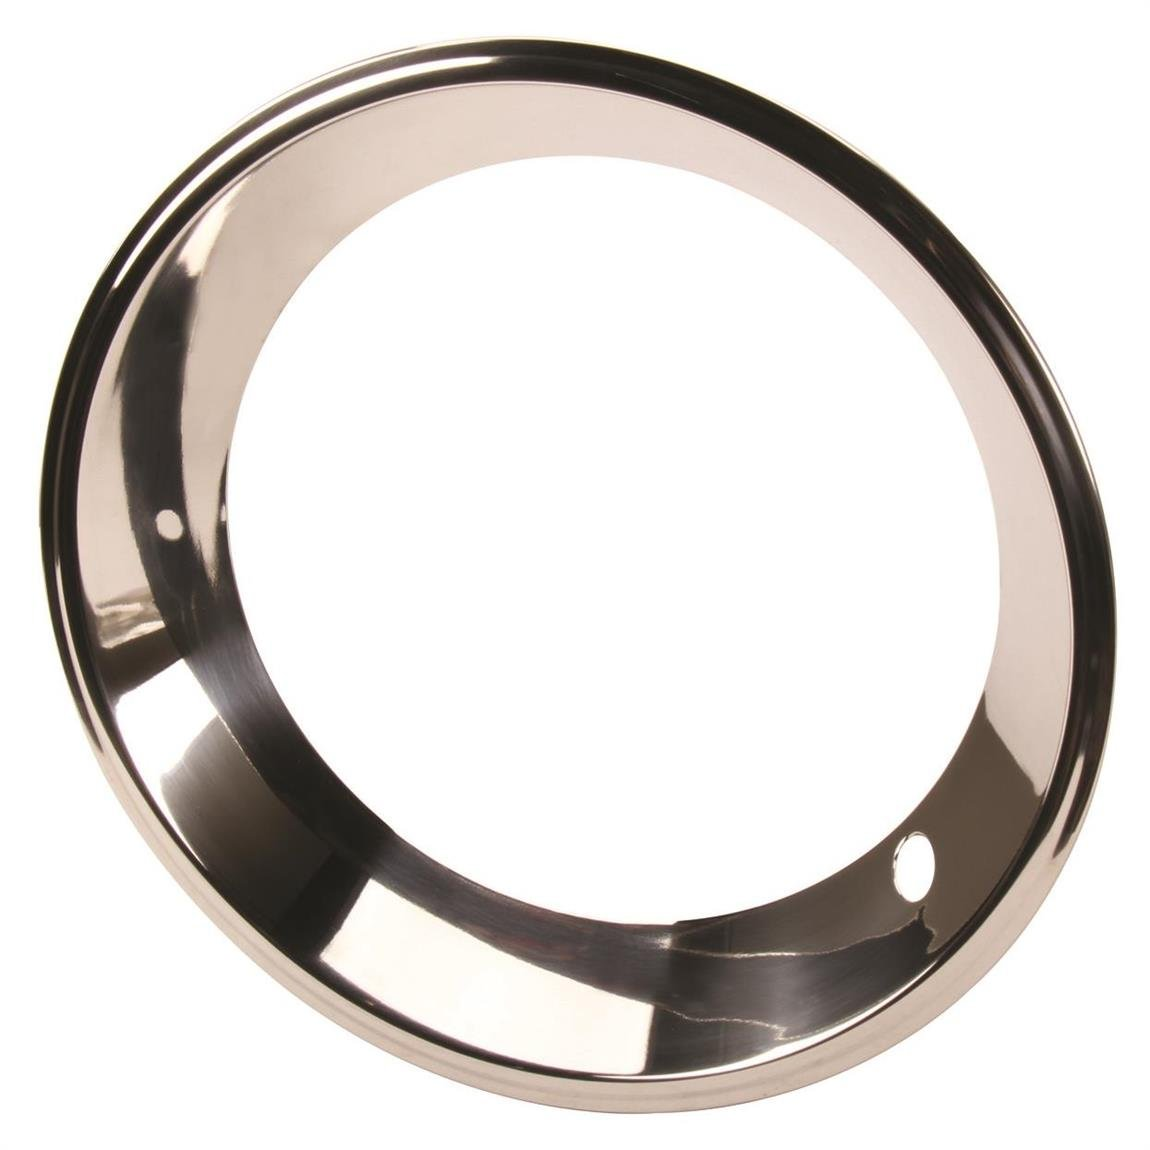 Stainless Steel Beauty Ring, 15 In GM Rally Wheel, 2.5 In Wide by Speedway Motors